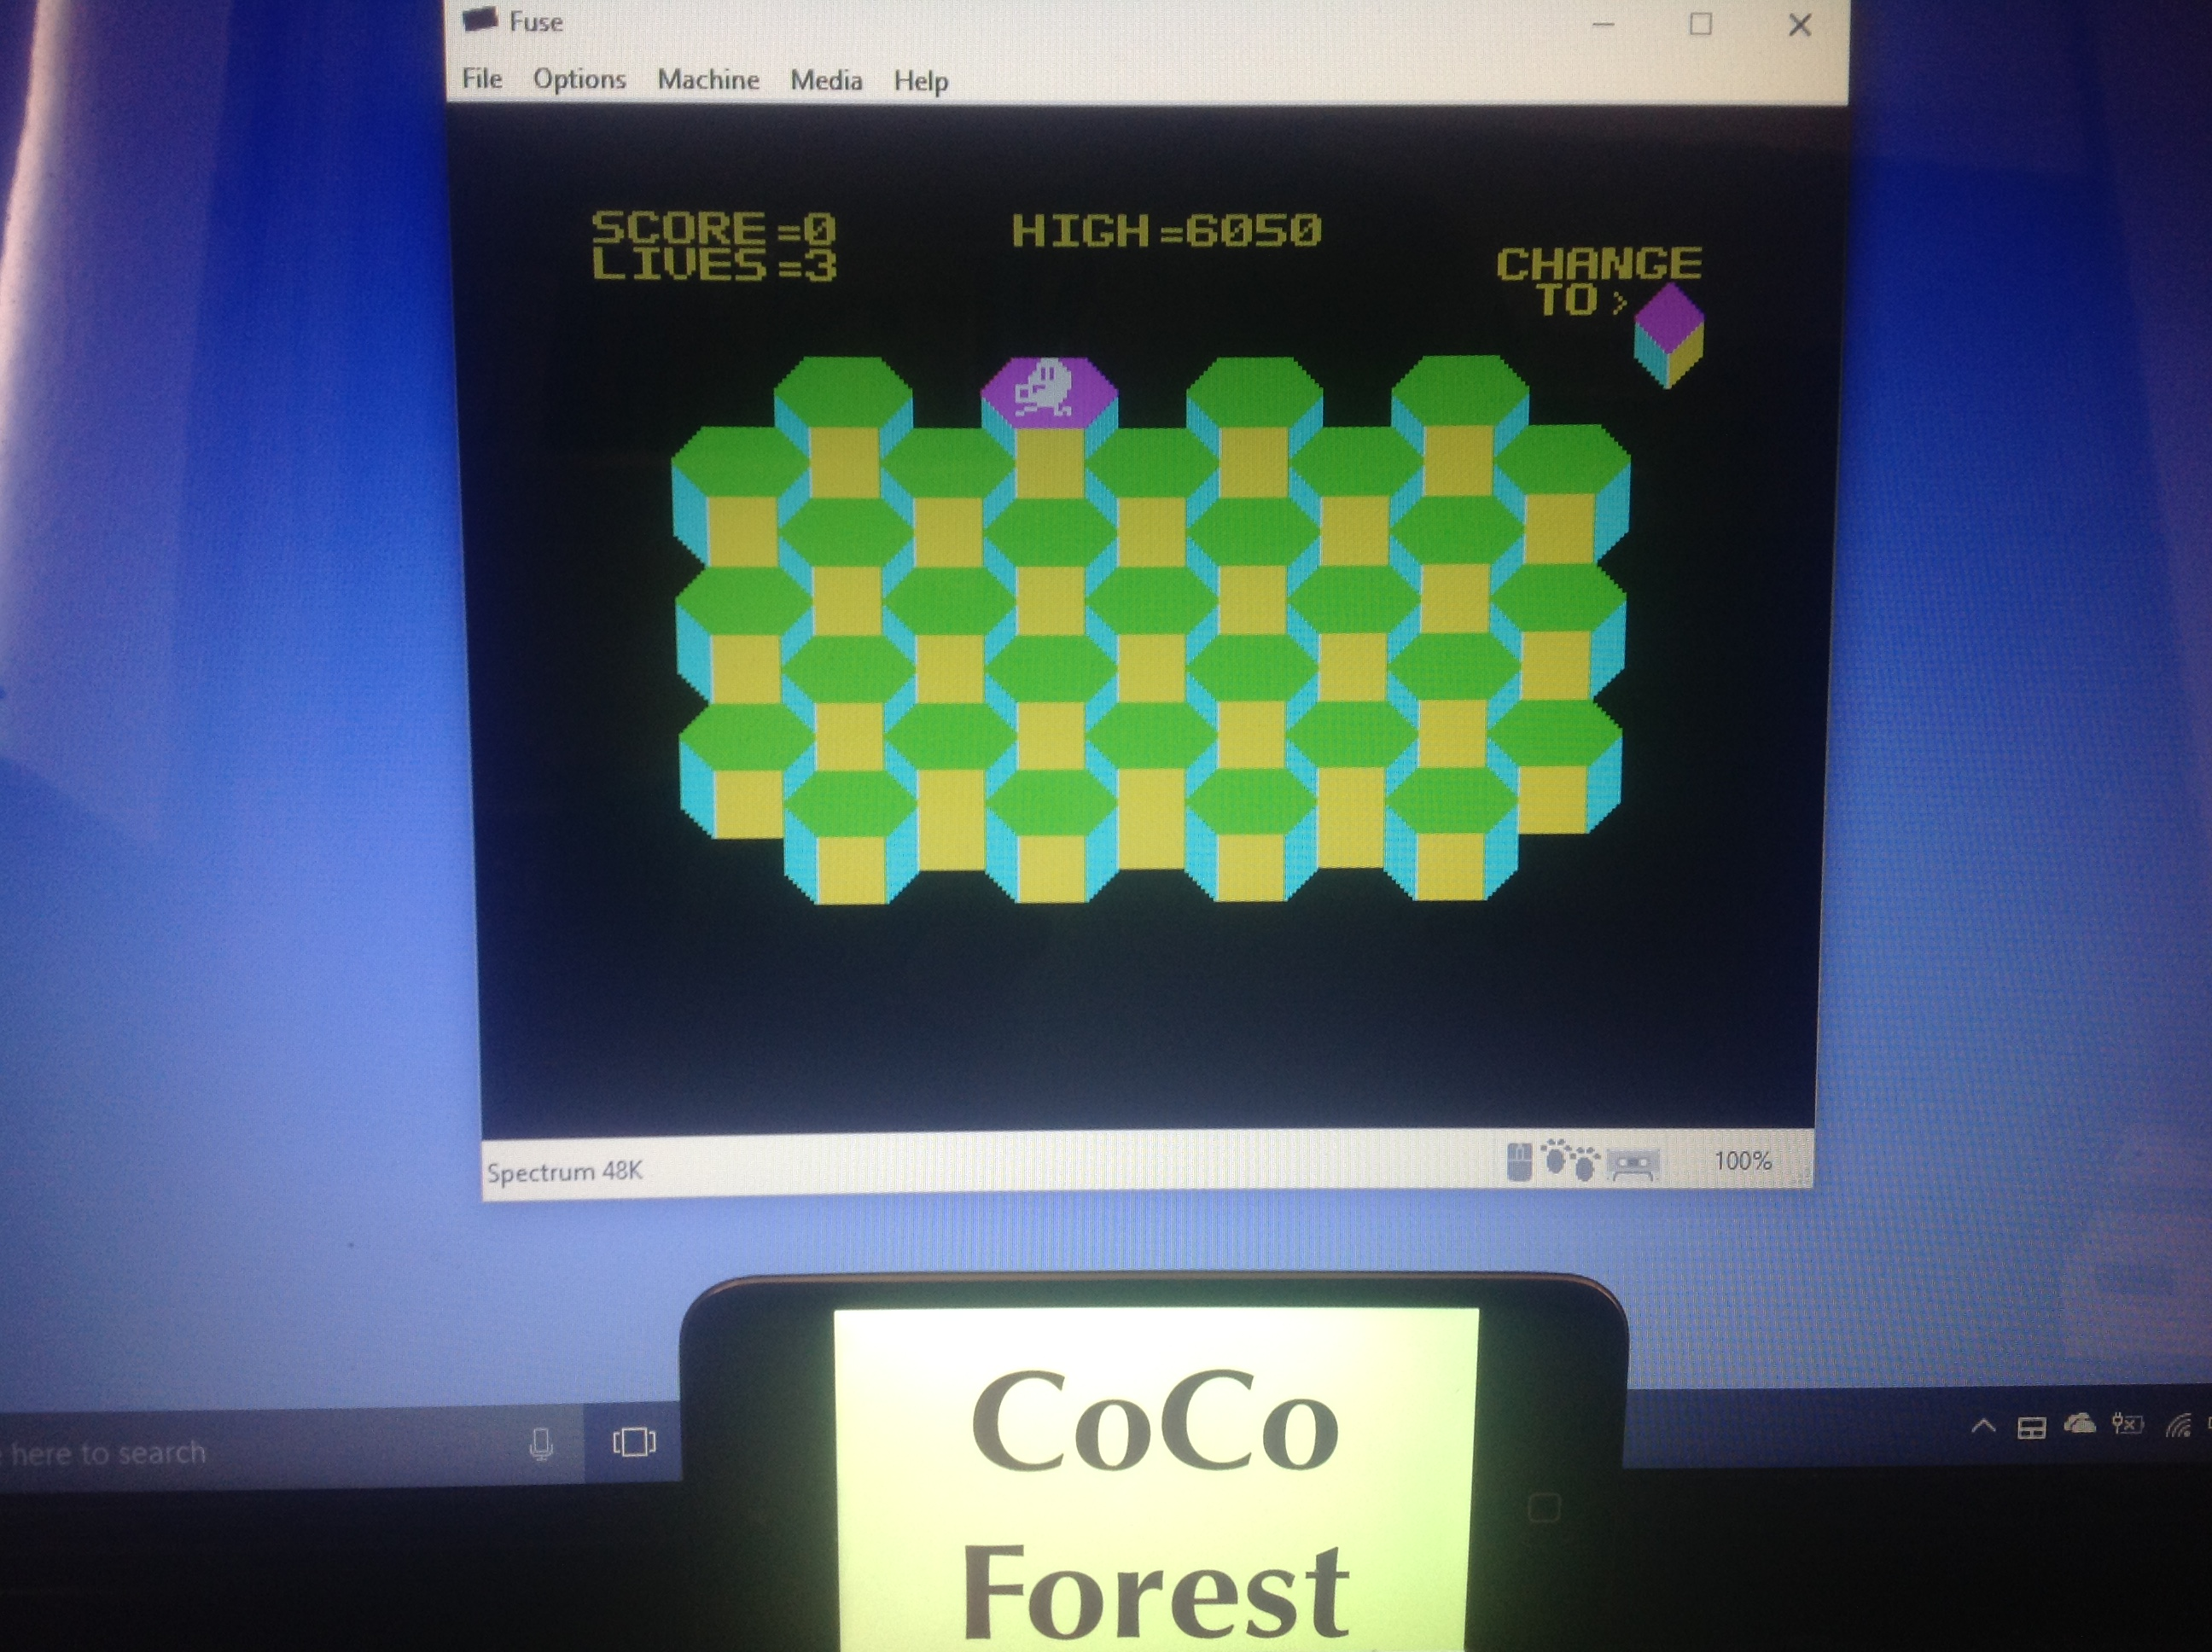 CoCoForest: Hubert (ZX Spectrum Emulated) 6,050 points on 2018-01-16 05:01:24